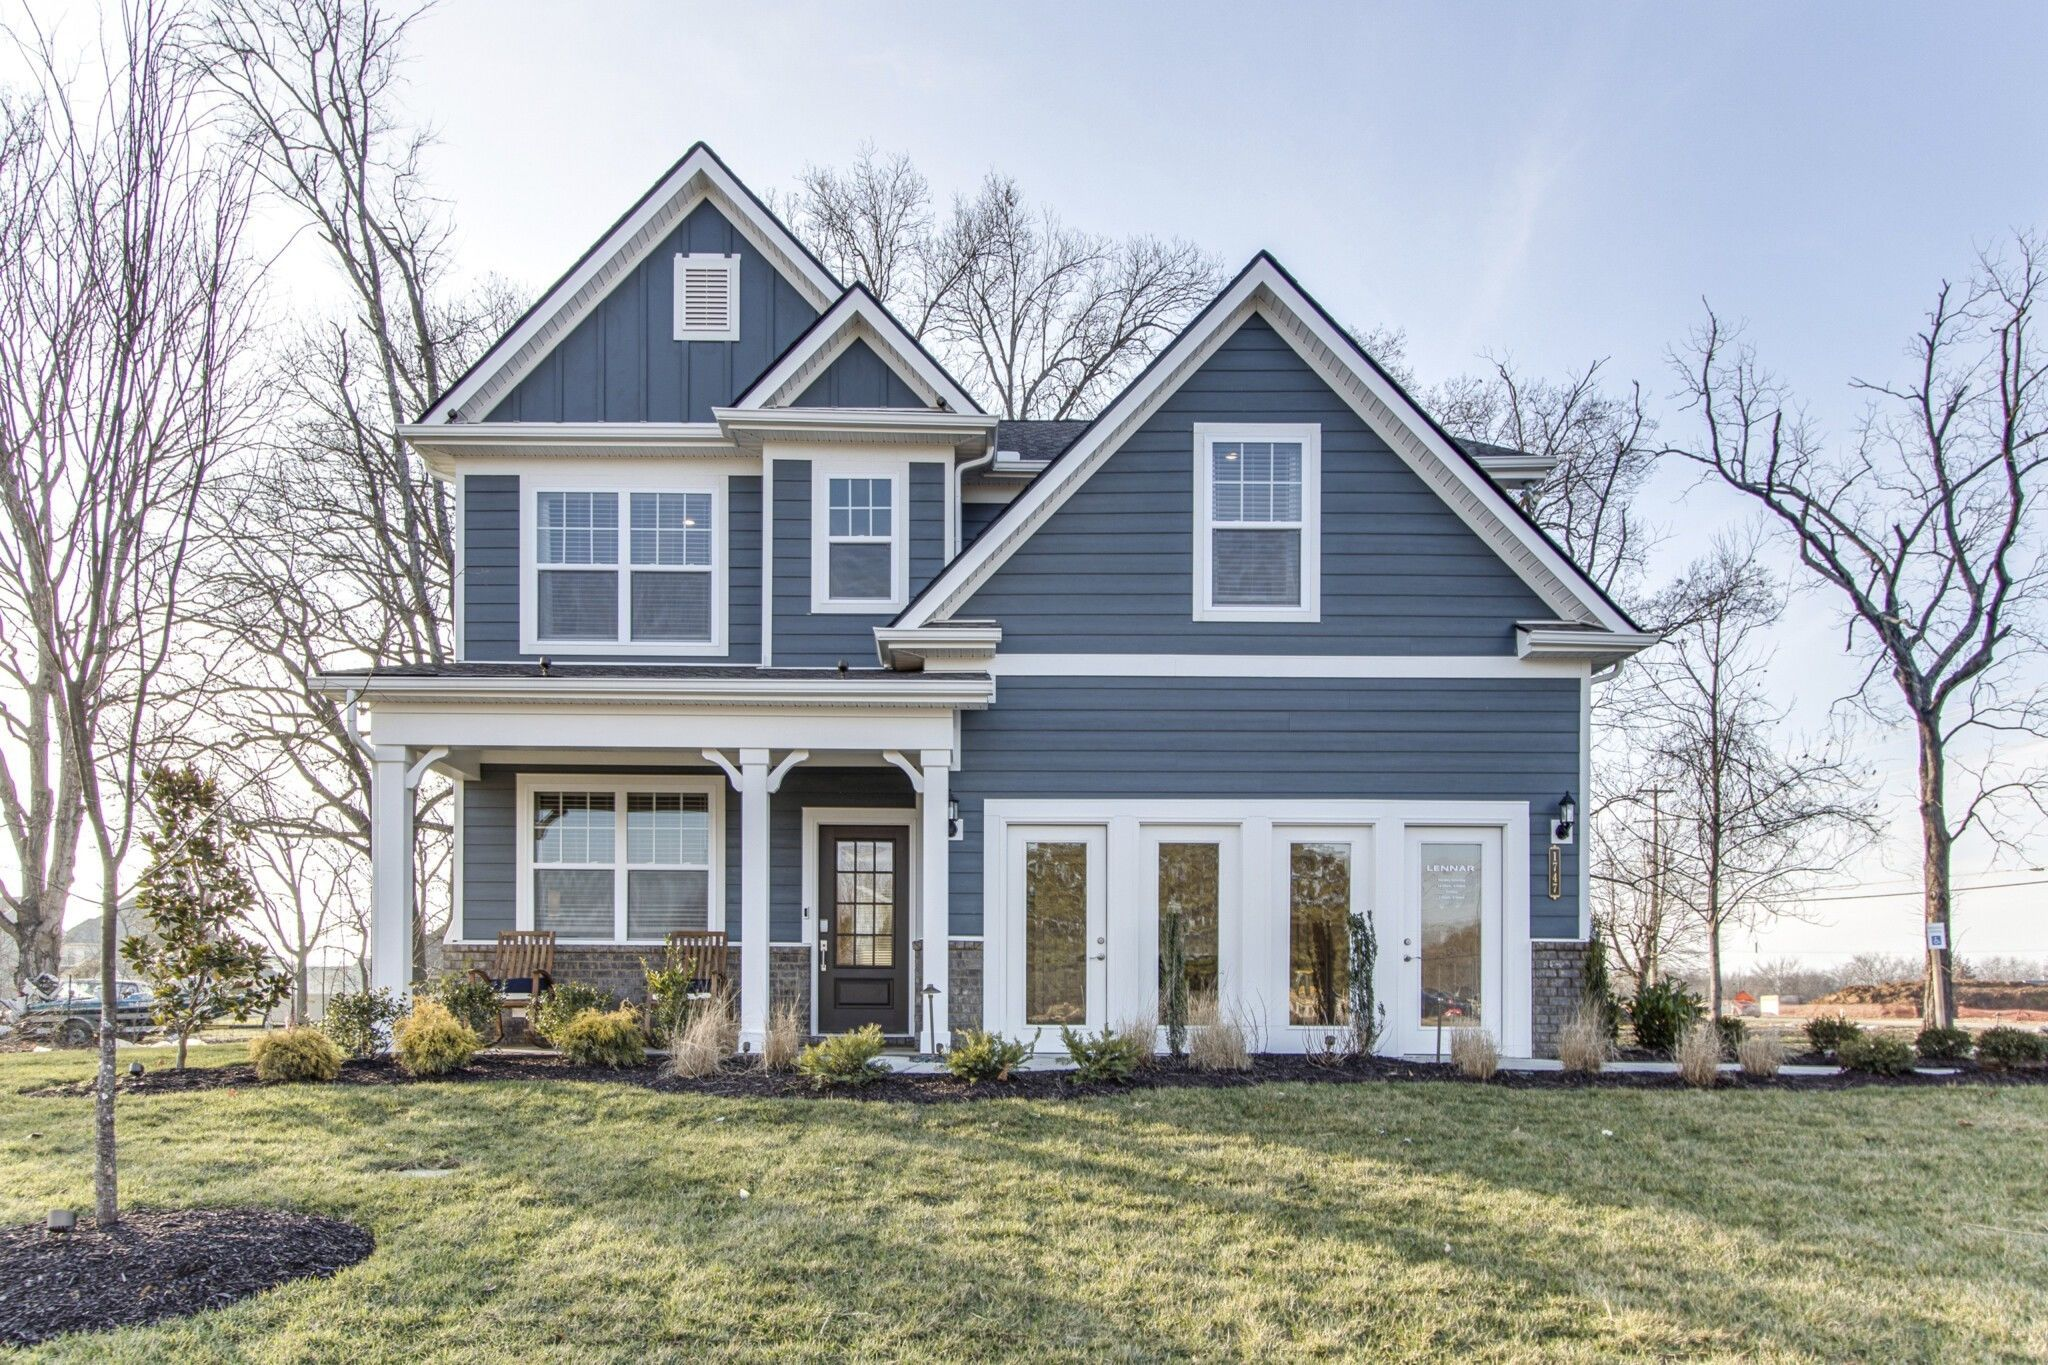 Sawgrass Subdivision Homes For Sale Spring Hill TN